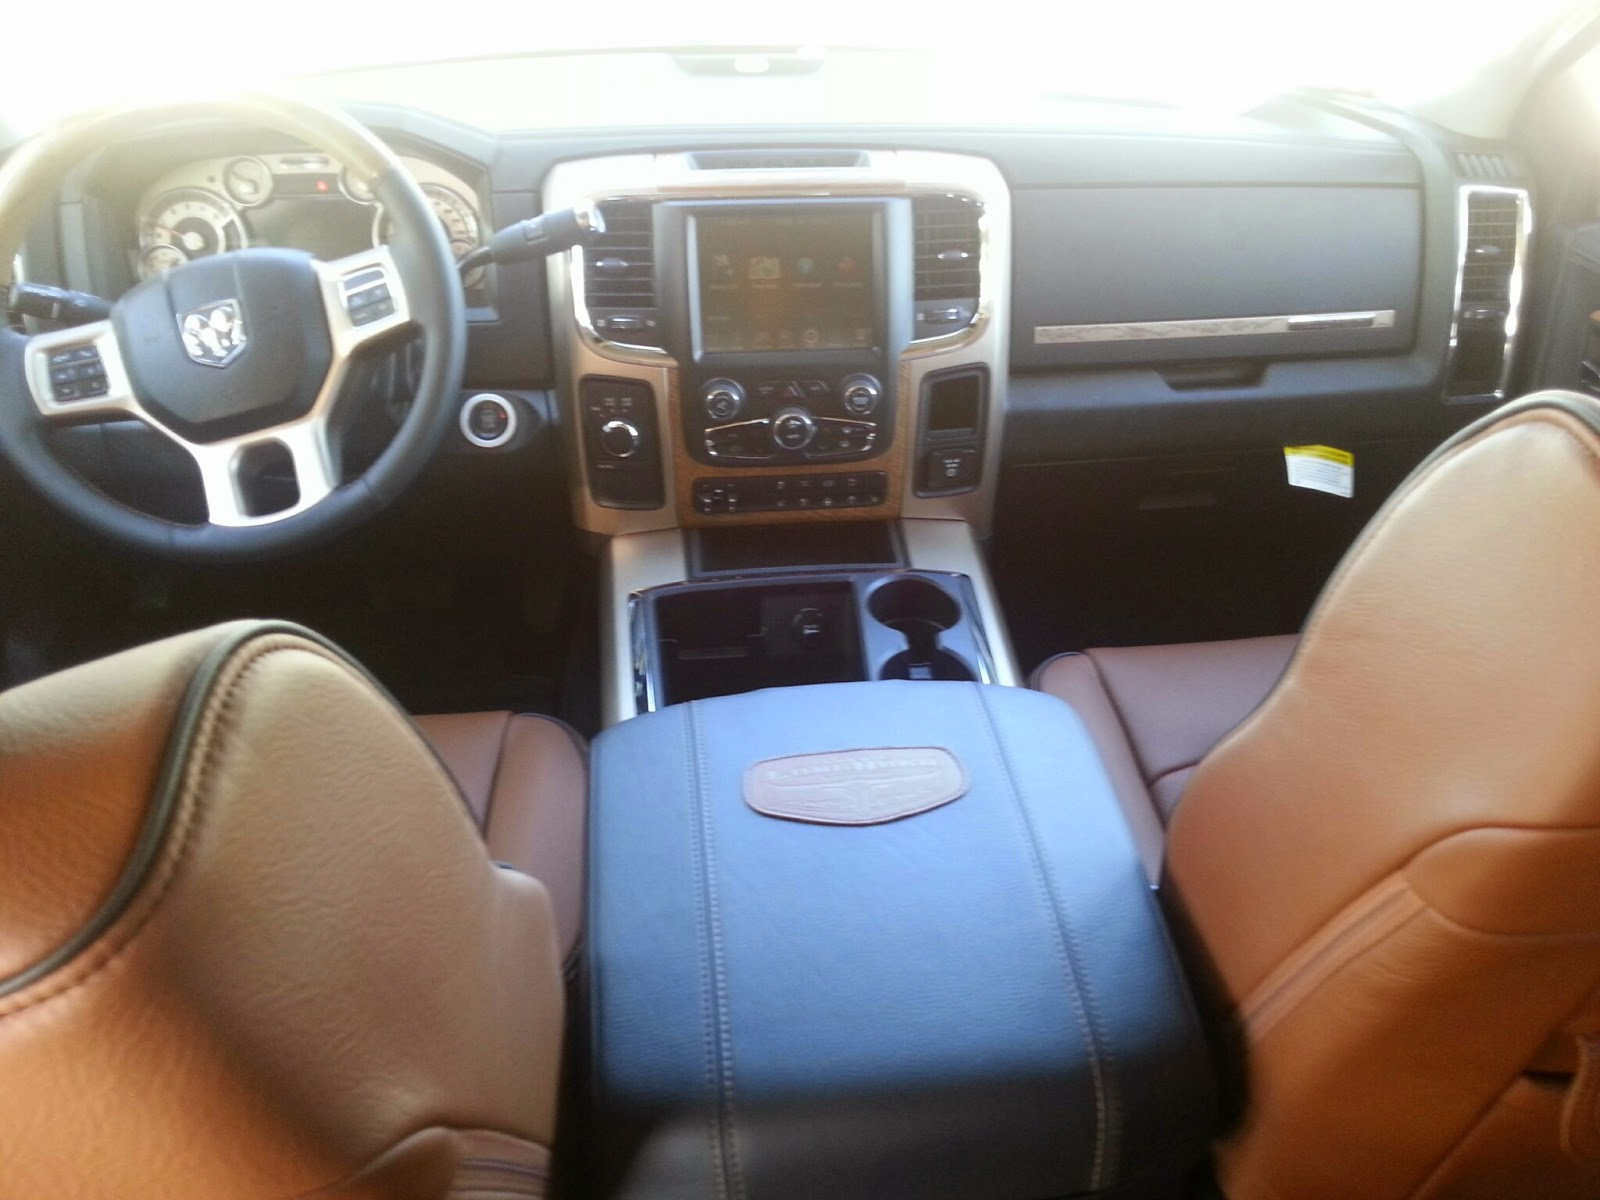 check out the new 2015 interior color blackcattle tan ram 3500 laramie longhorn mega cab 4x4 swr truck call troy young 817 243 9840 - 2015 Dodge Ram 2500 Mega Cab Lifted Interior